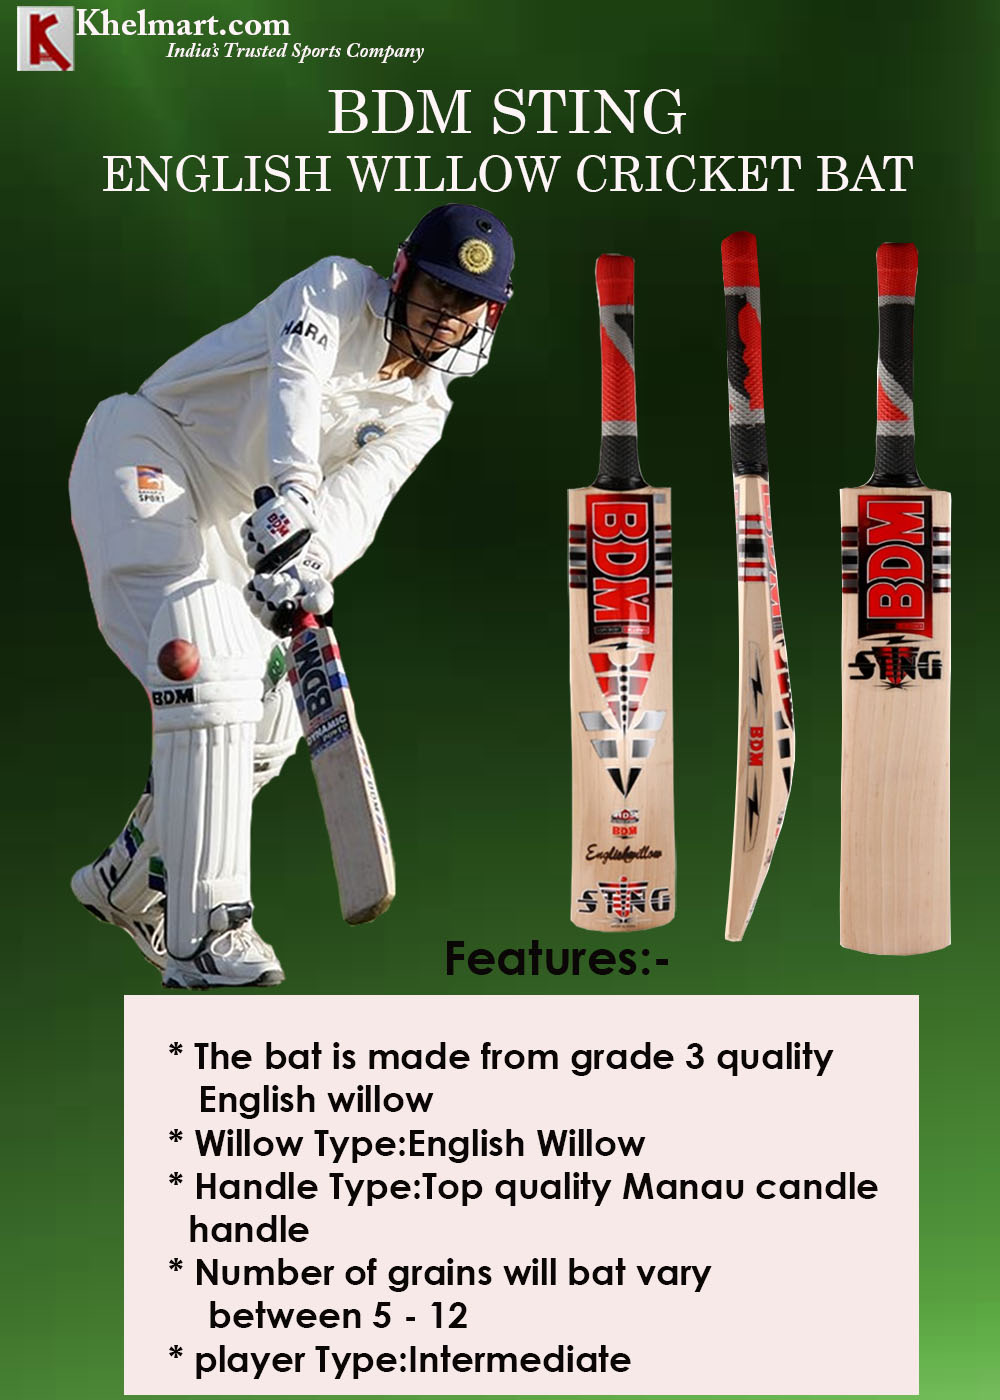 BDM Sting English Willow Cricket Bat